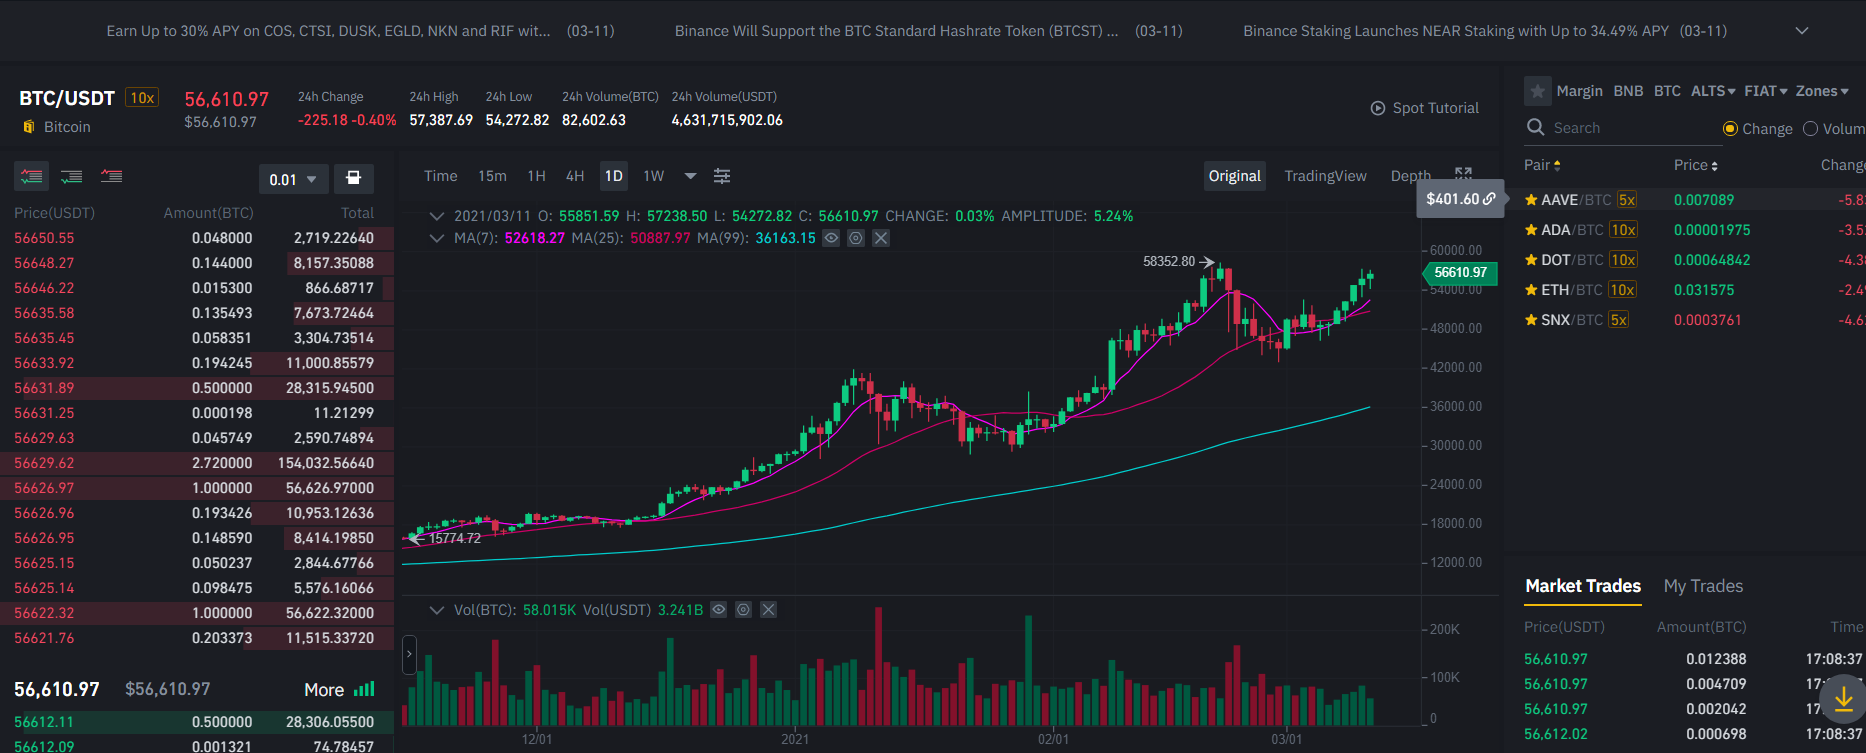 Binance Trading Report